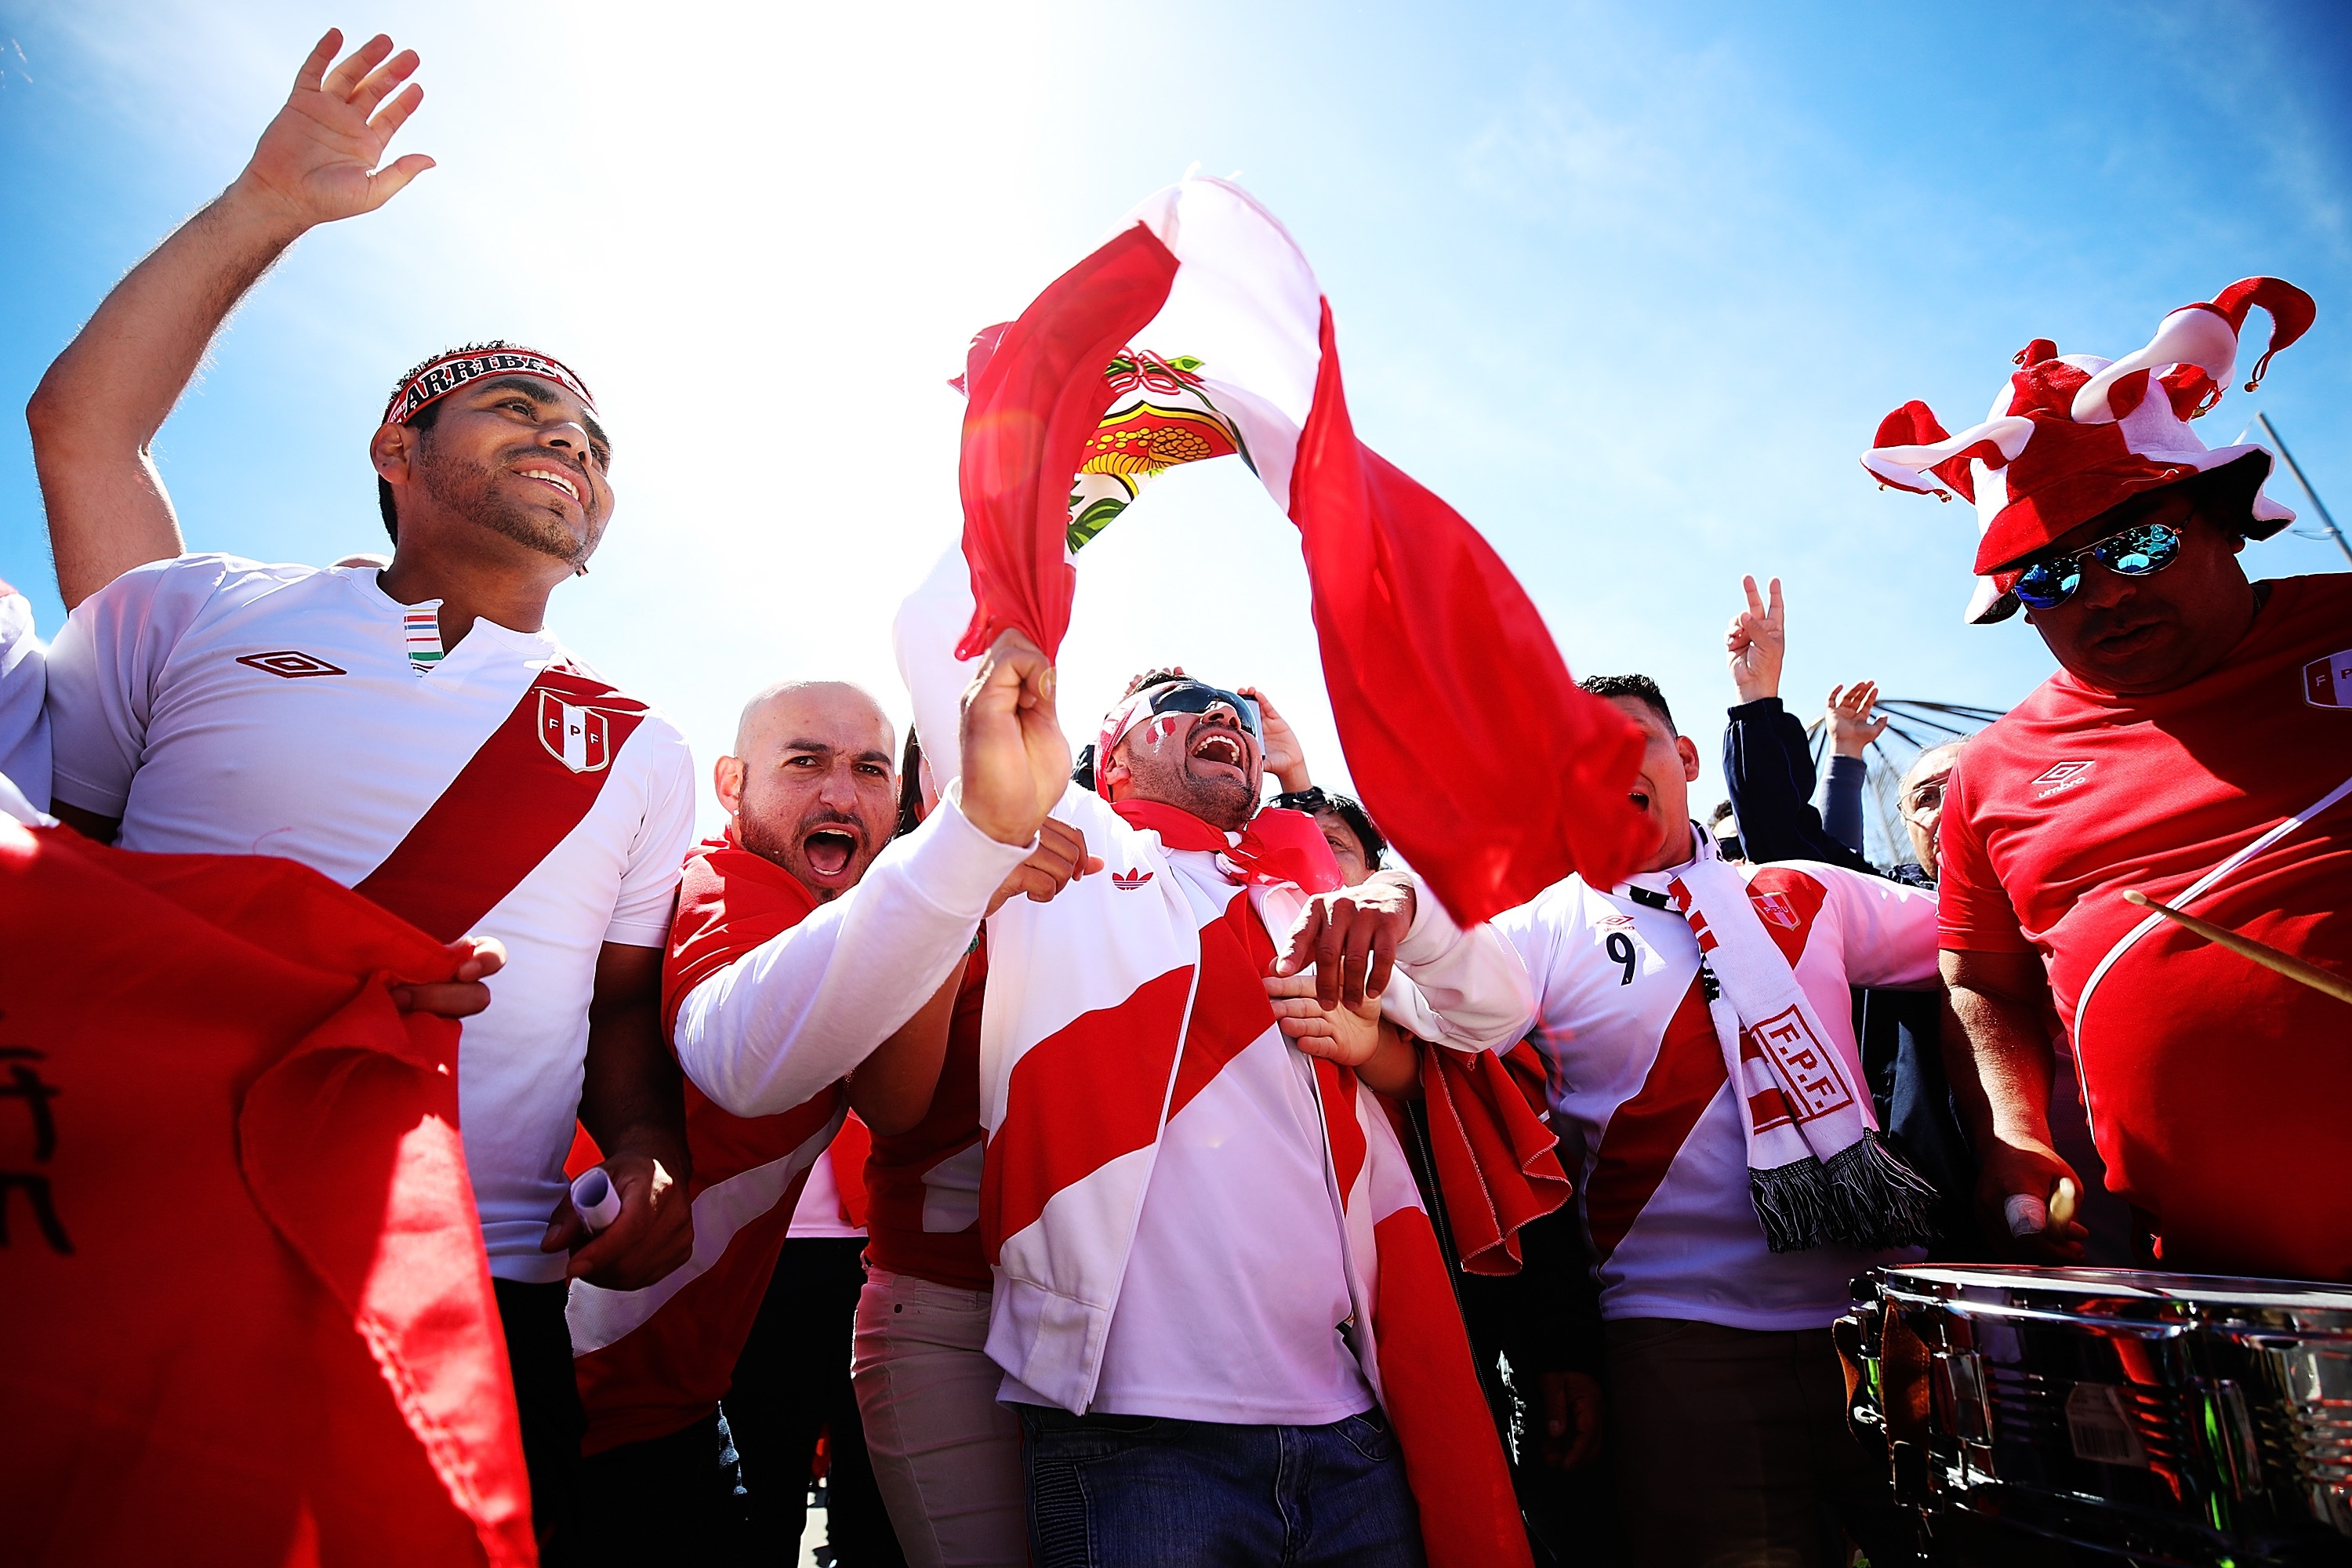 Op-Ed: Paolo Guerrero's World Cup Ban Is Devastating, But Peru Will Be OK